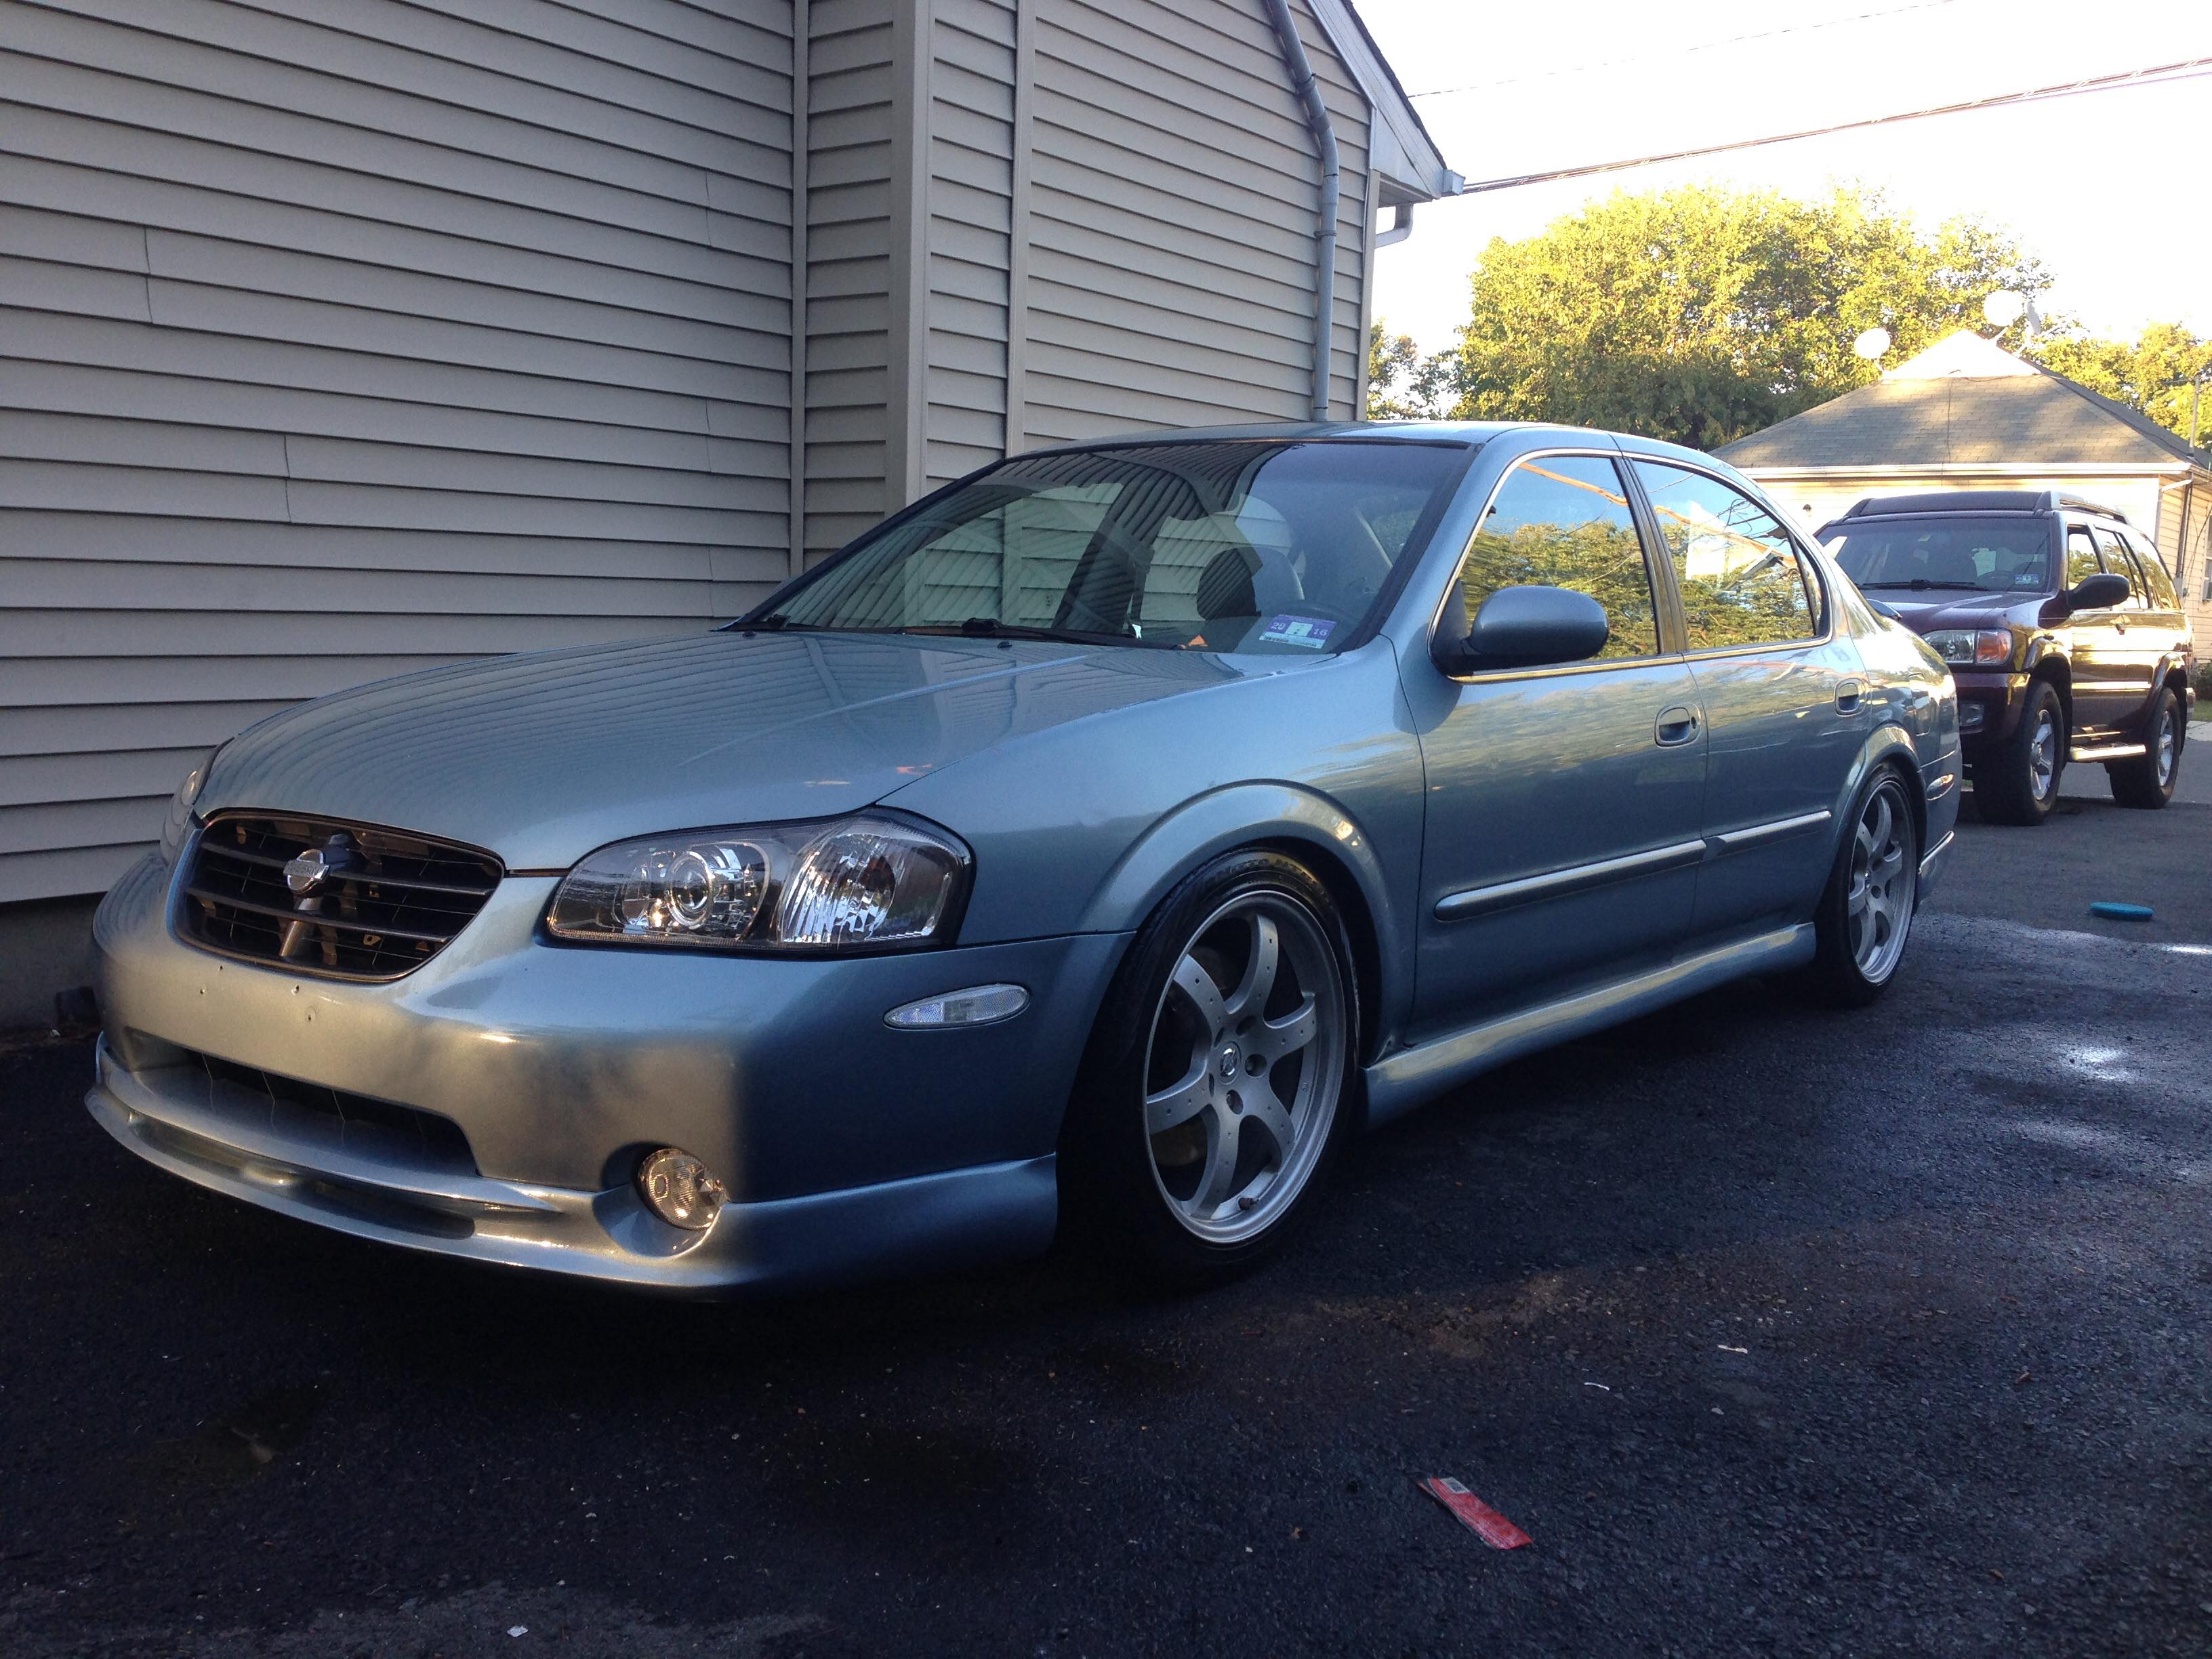 David Colaire's 2001 6-Speed VQ35HR Swapped 5thgen Maxima